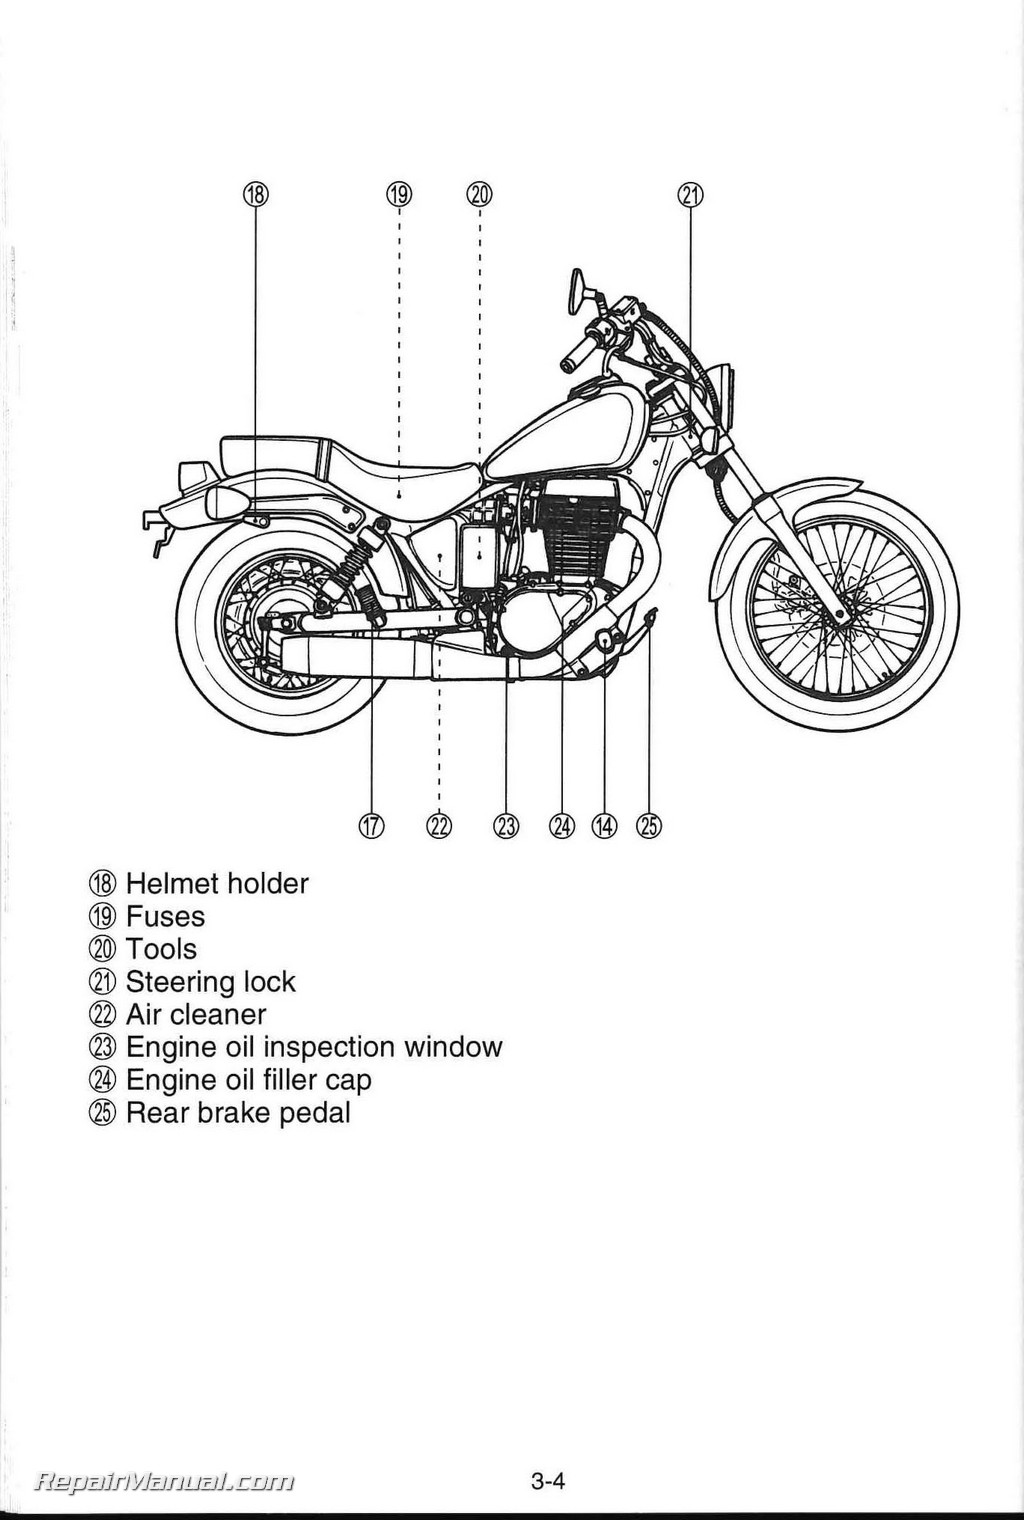 Suzuki Boulevard S40 Ls650 Motorcycle Owners Manual